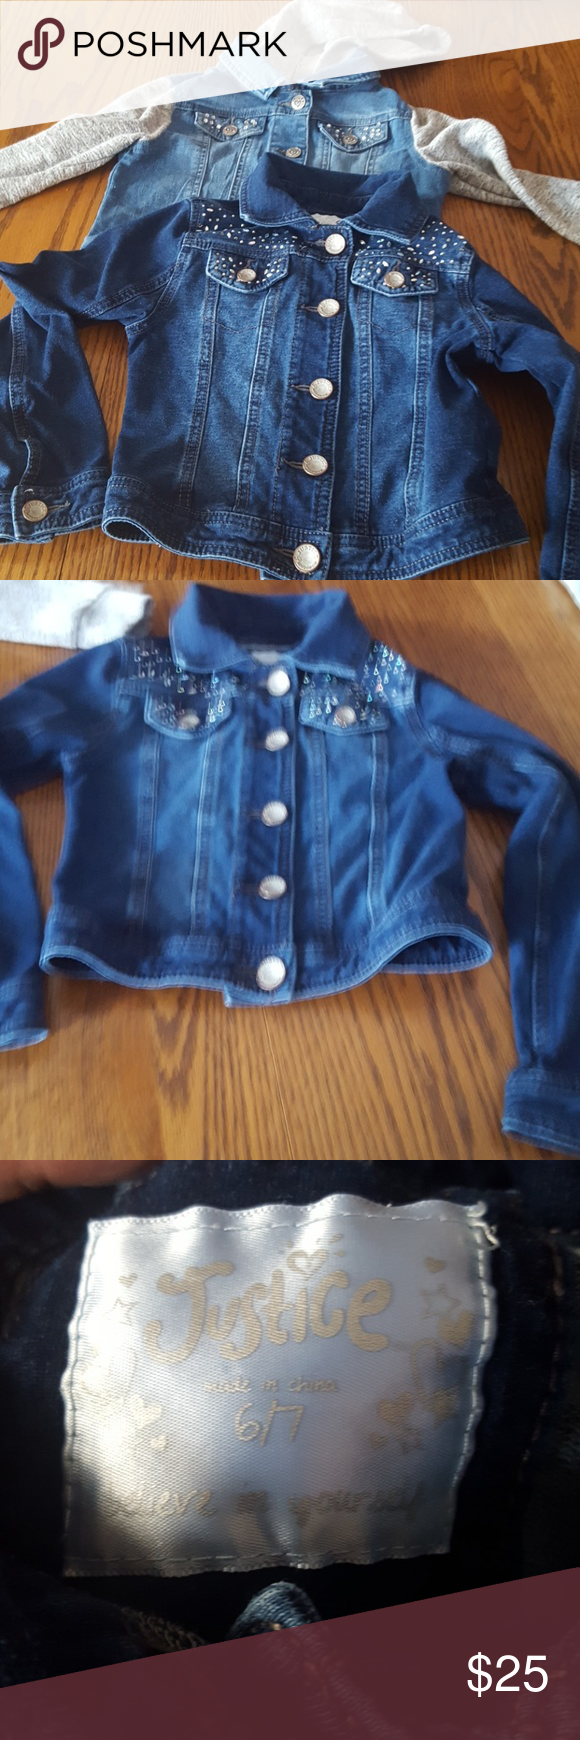 d8b76830 justice jean jackets-2 smoke free home. one is denim with sparkles,  the.other denim with fleece sleeves and hood. both from justice. size 6/7  Justice ...